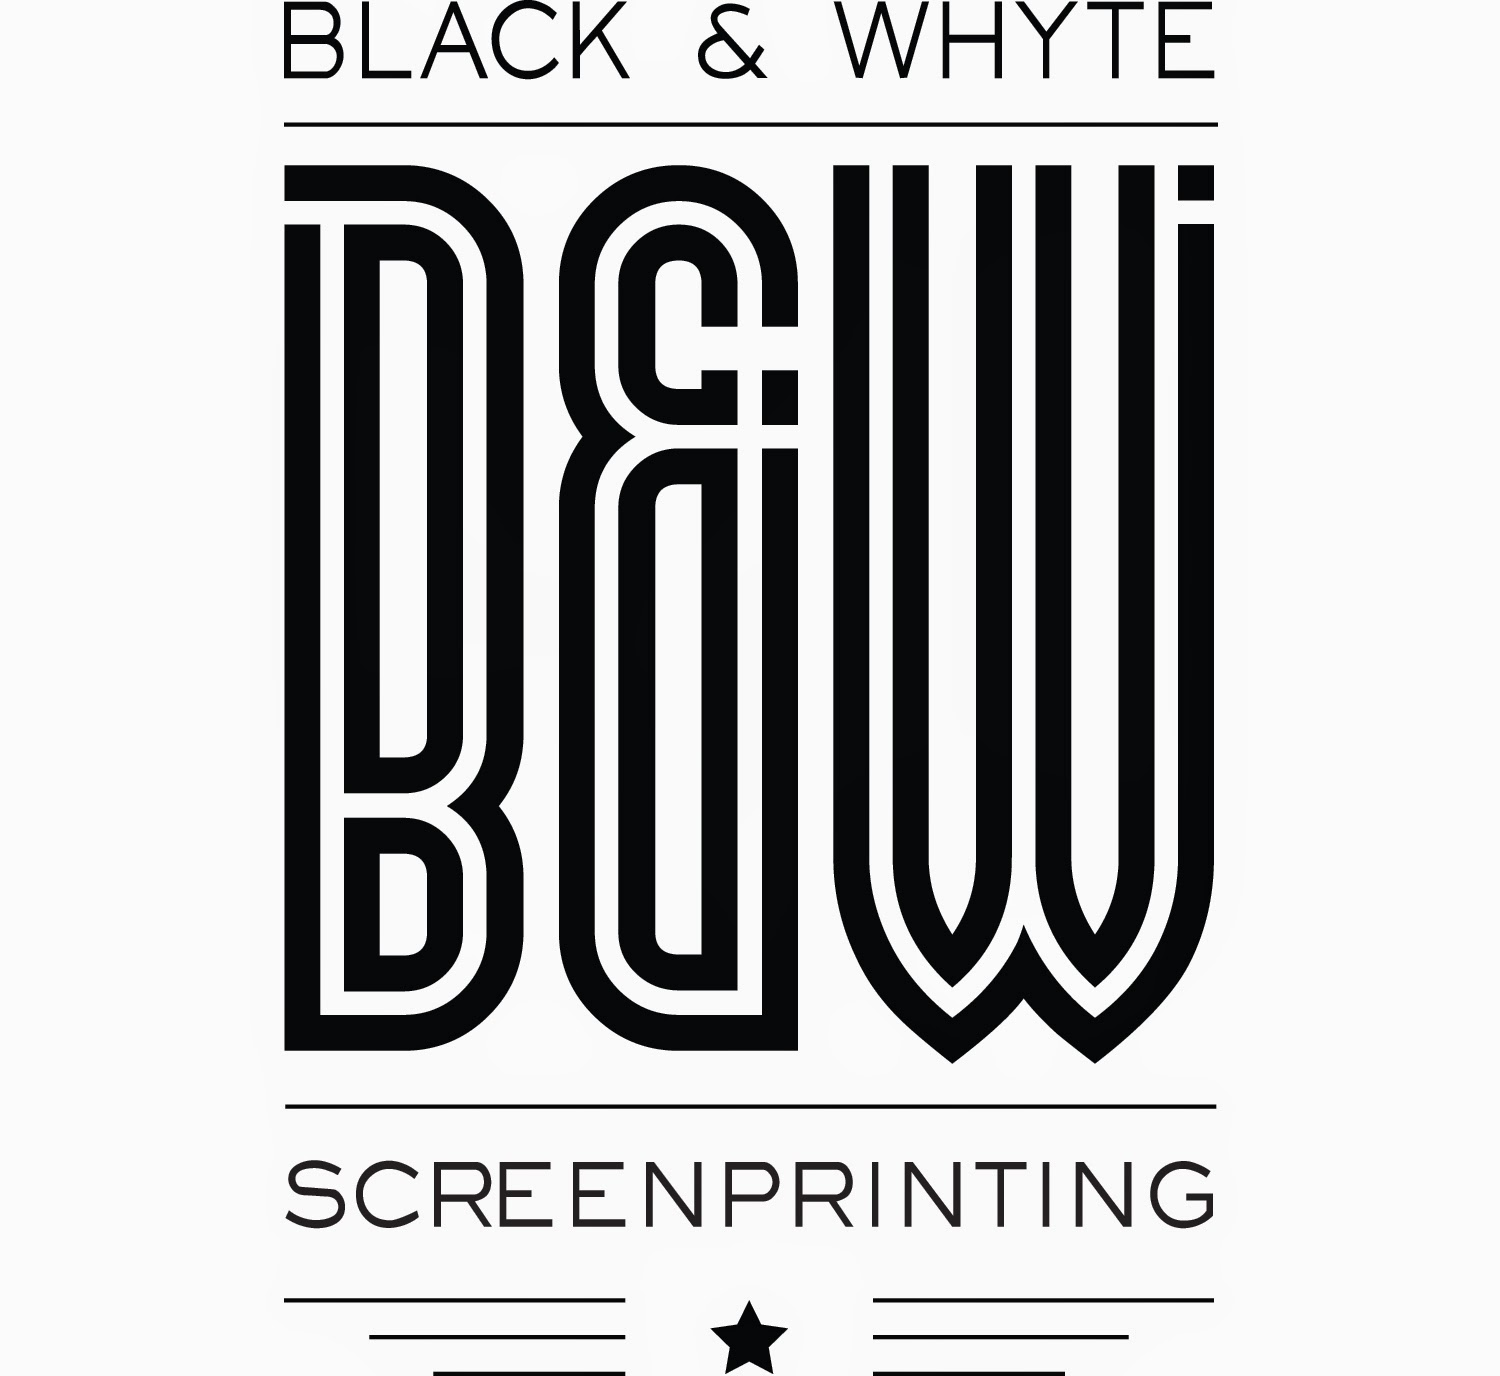 Black & Whyte Screenprinting